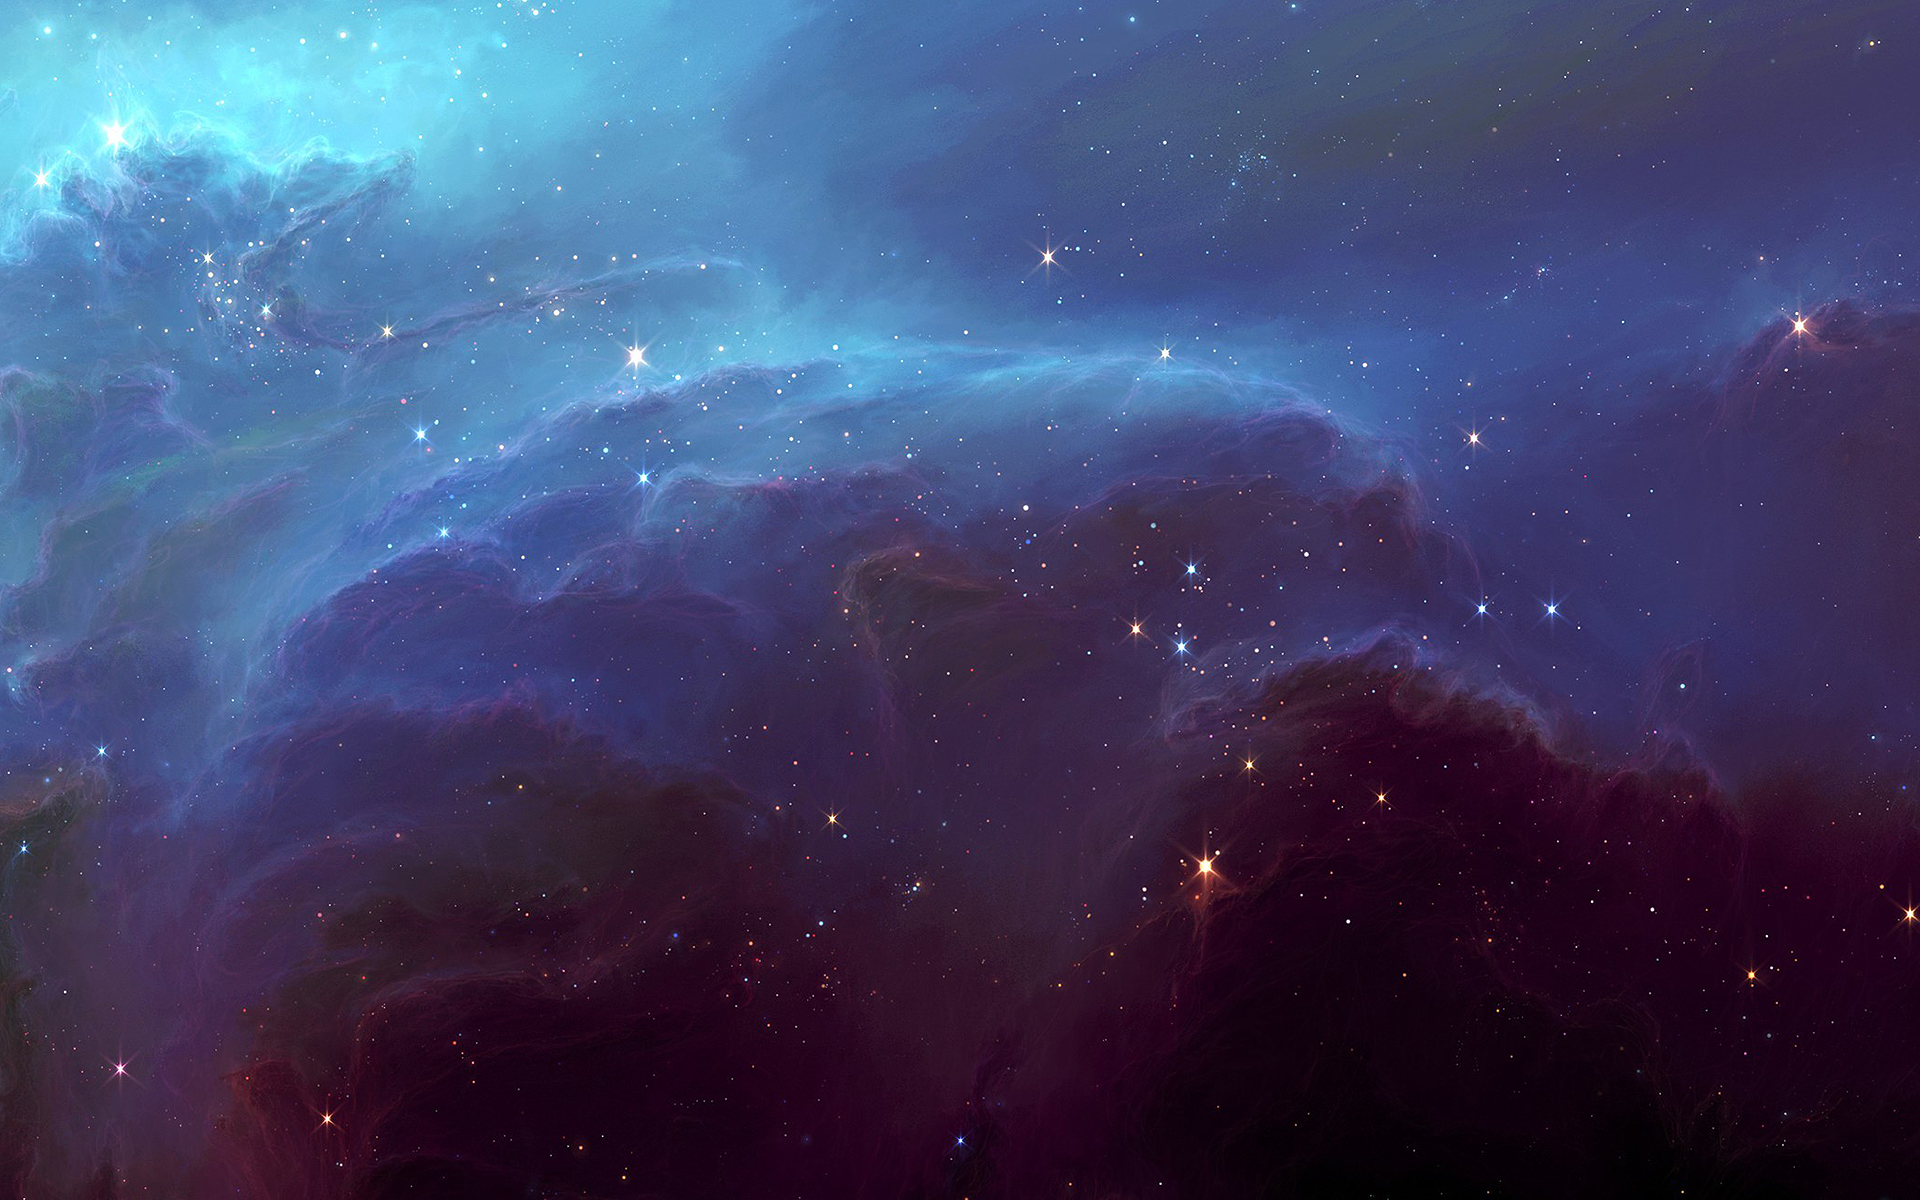 Space blue nebula